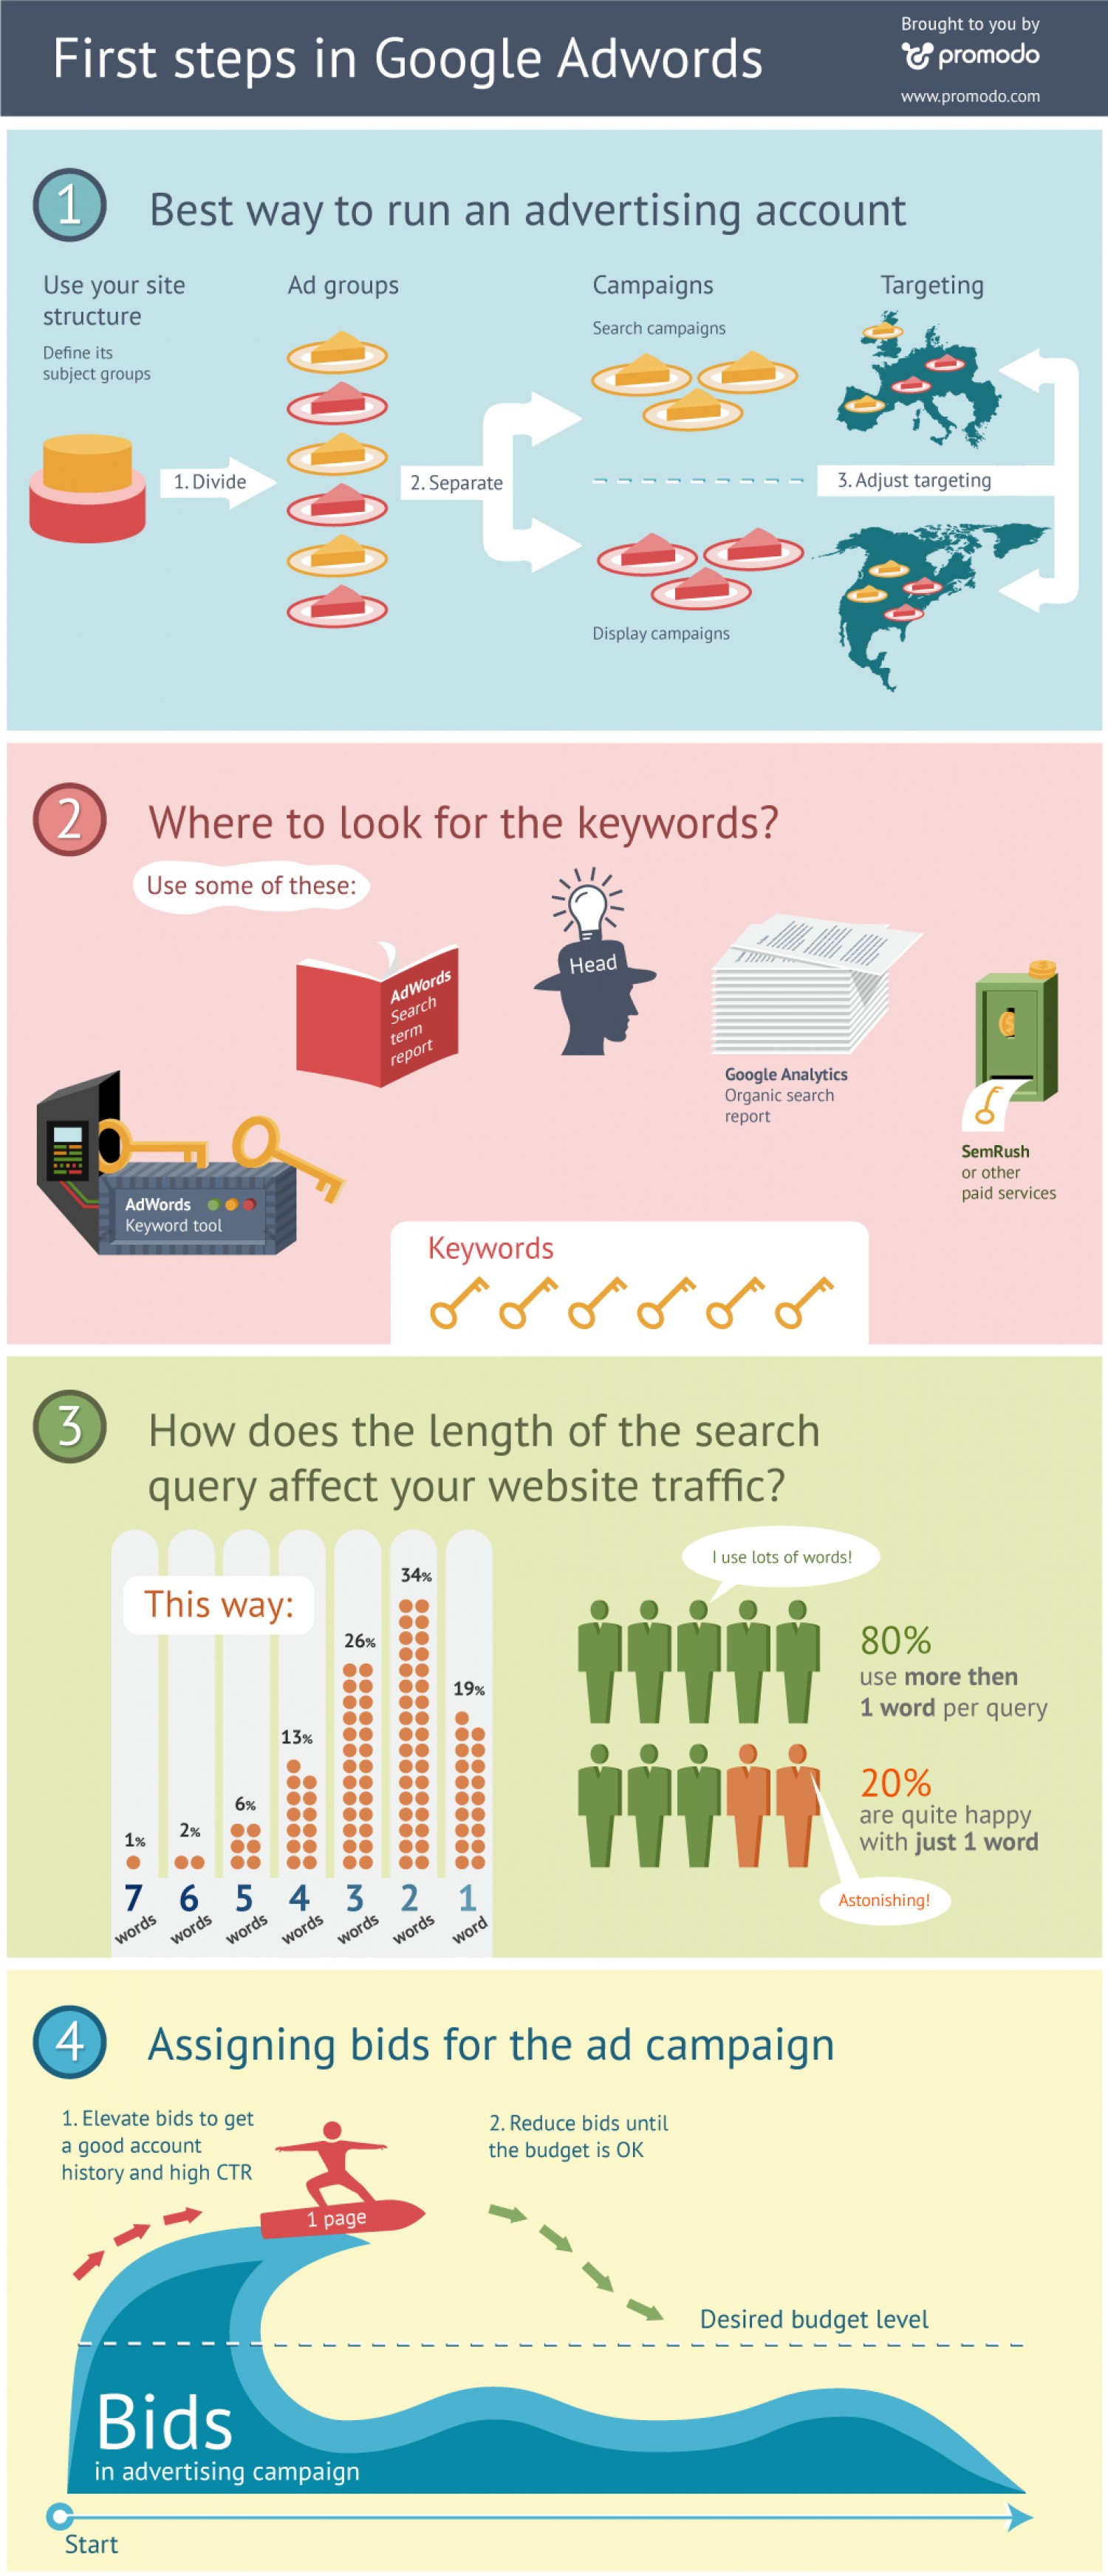 First Steps in Google Adwords